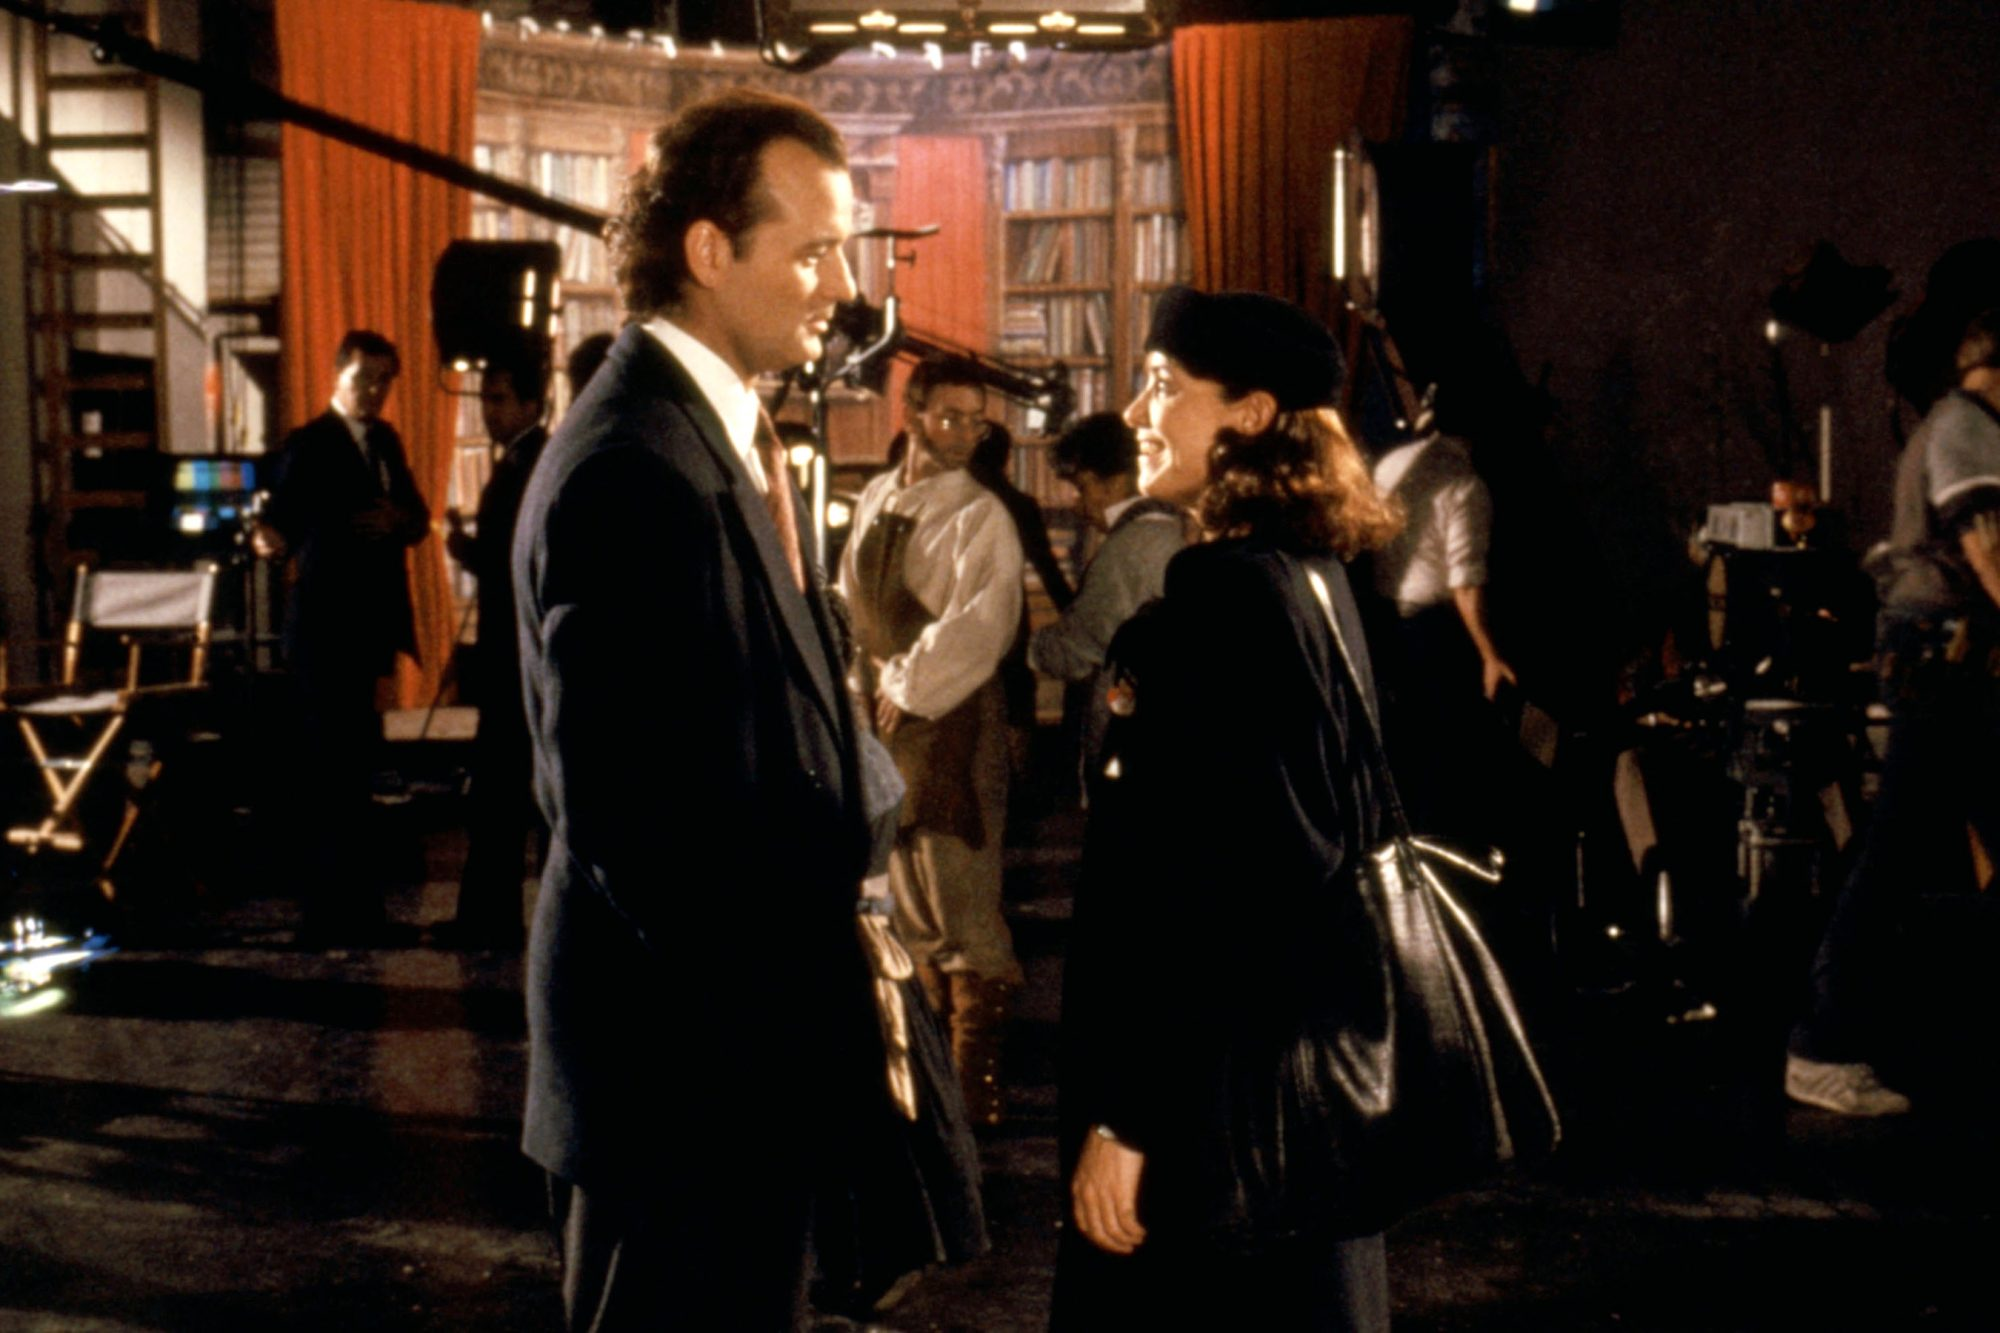 SCROOGED, Bill Murray, Karen Allen, 1988, (c)Paramount/courtesy Everett Collection